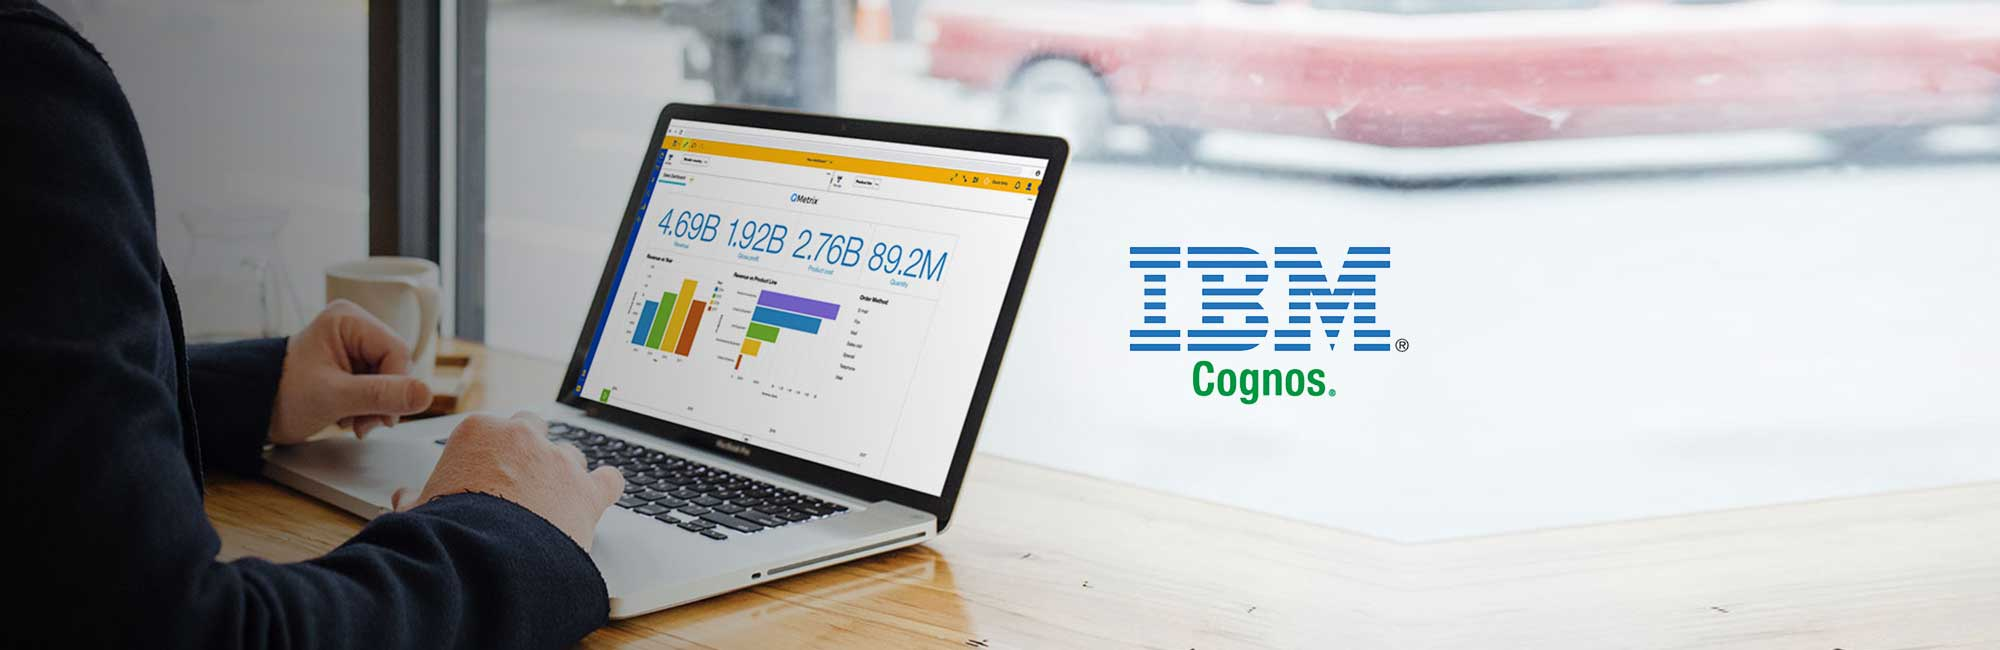 Latest releases of IBM Cognos Analytics